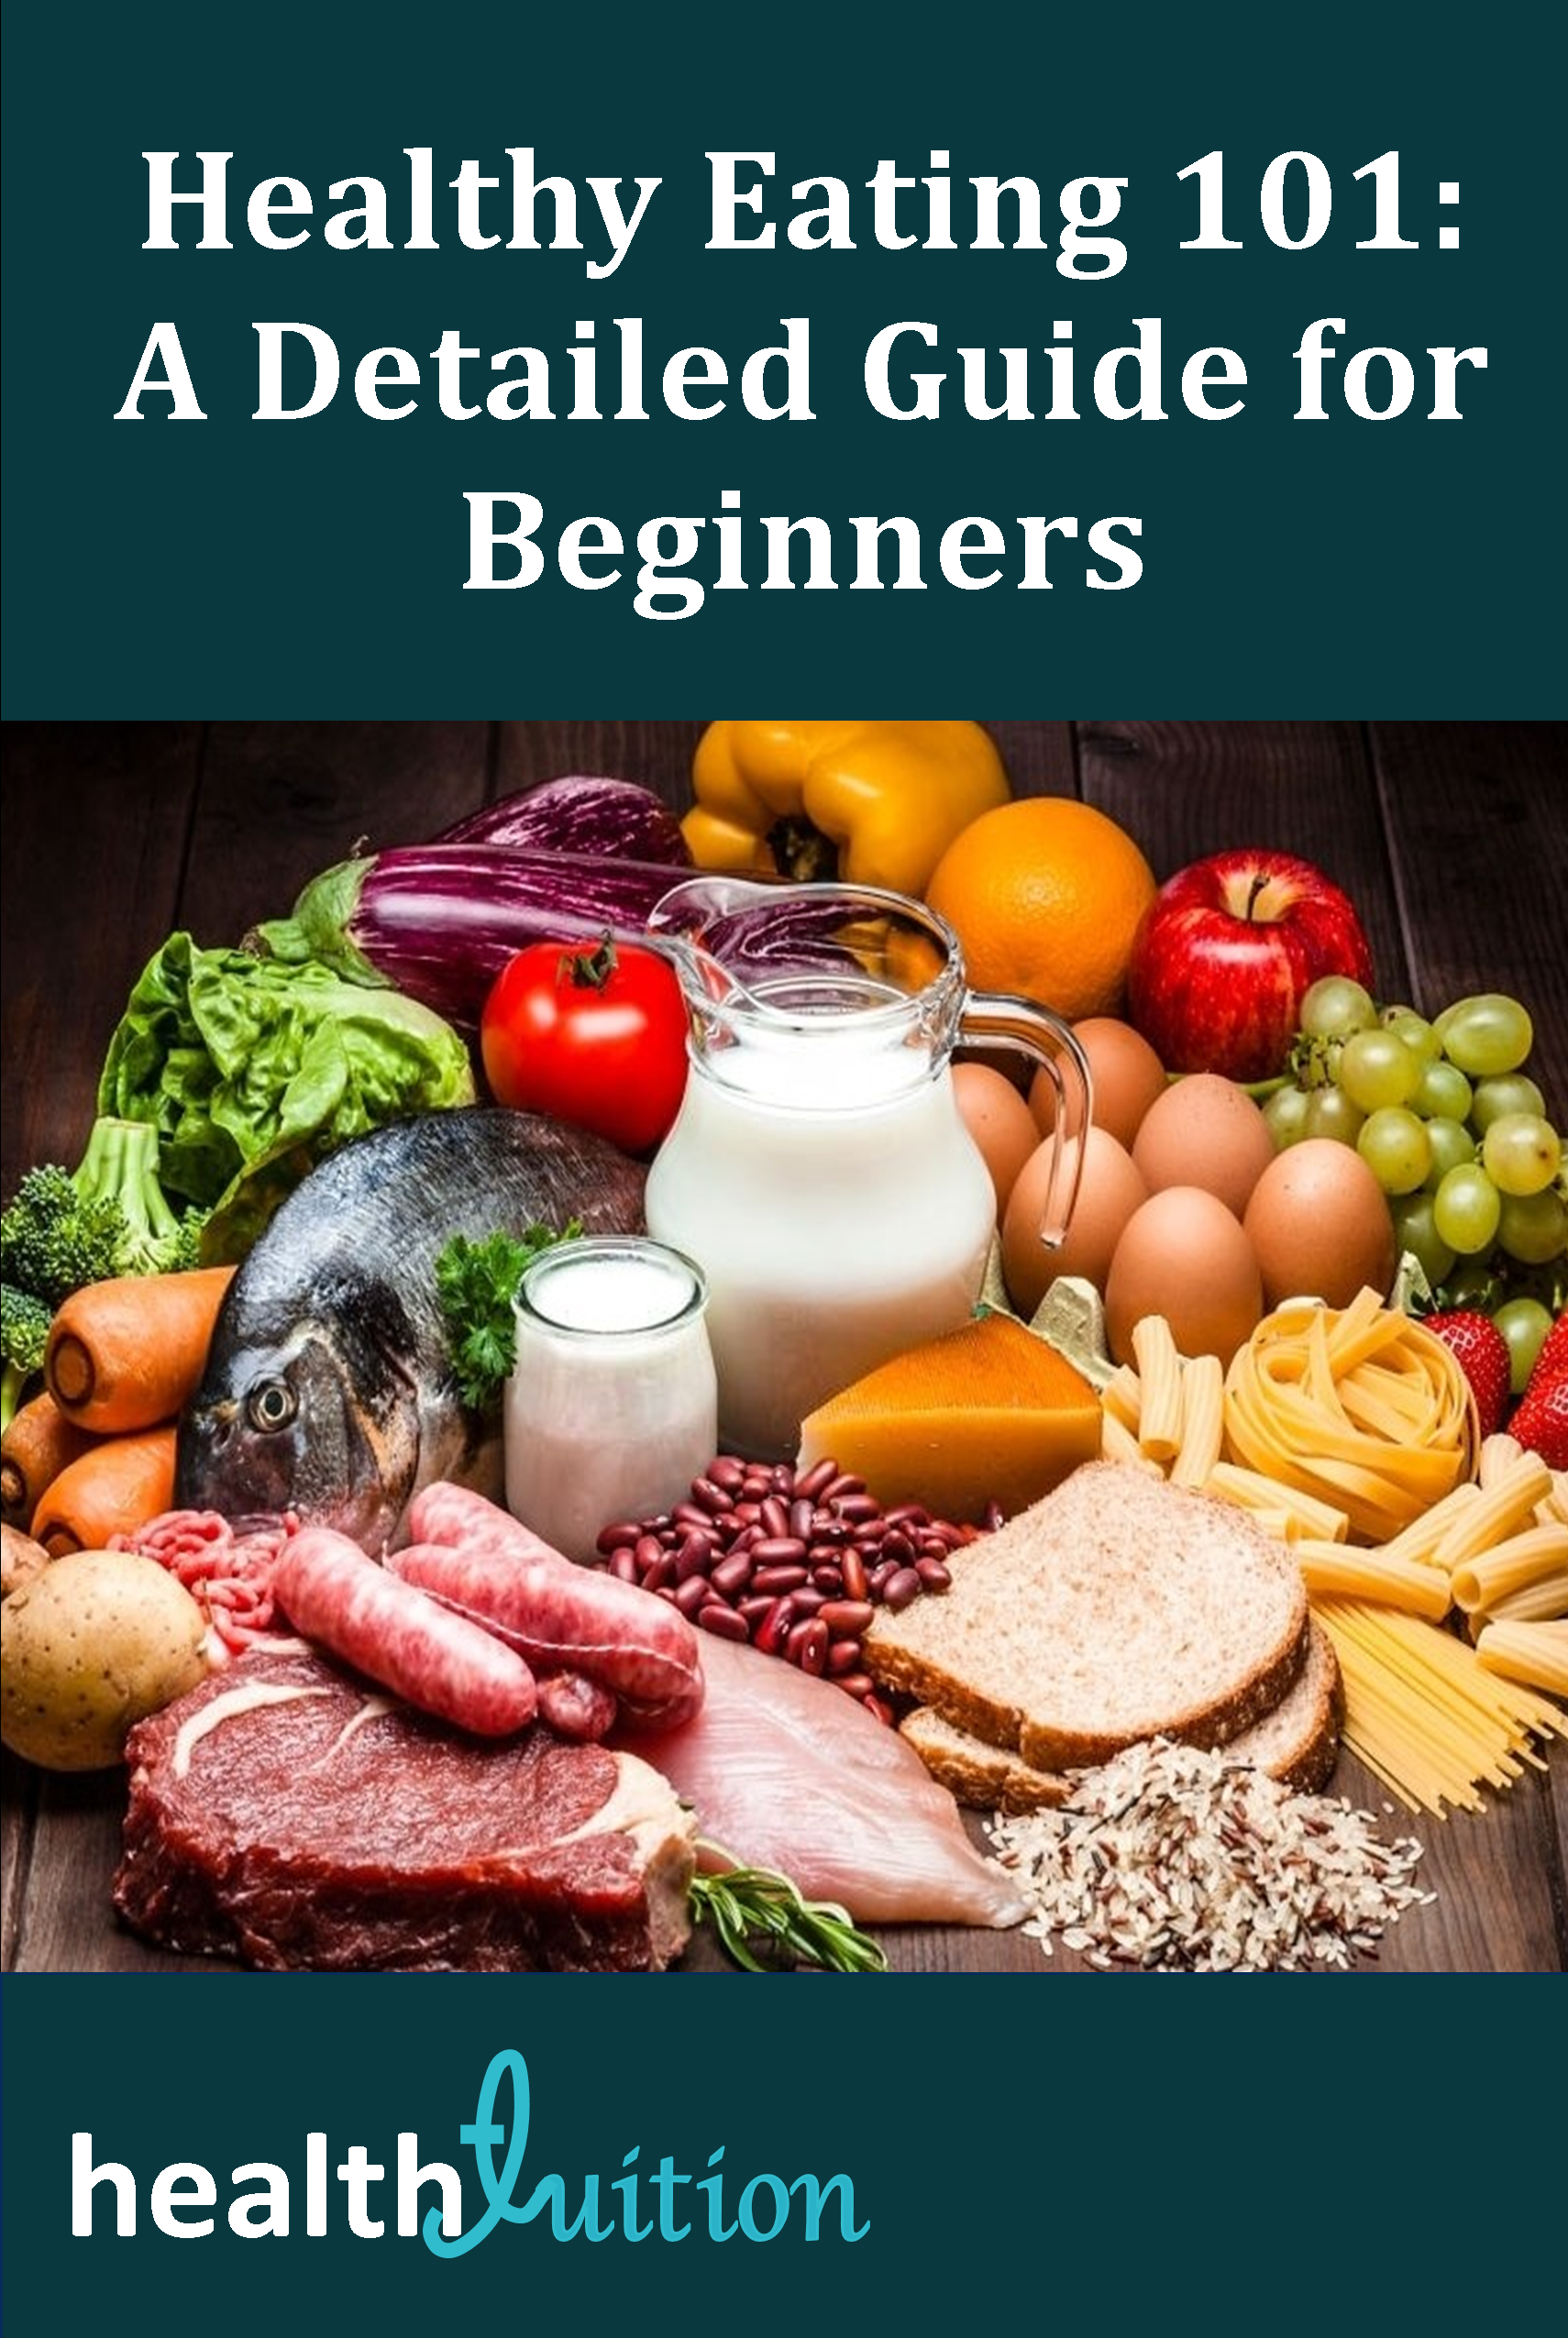 Healthy Eating101 A Detailed Guide For Beginners Healthy Eating Planner Diet And Nutrition Healthy Eating